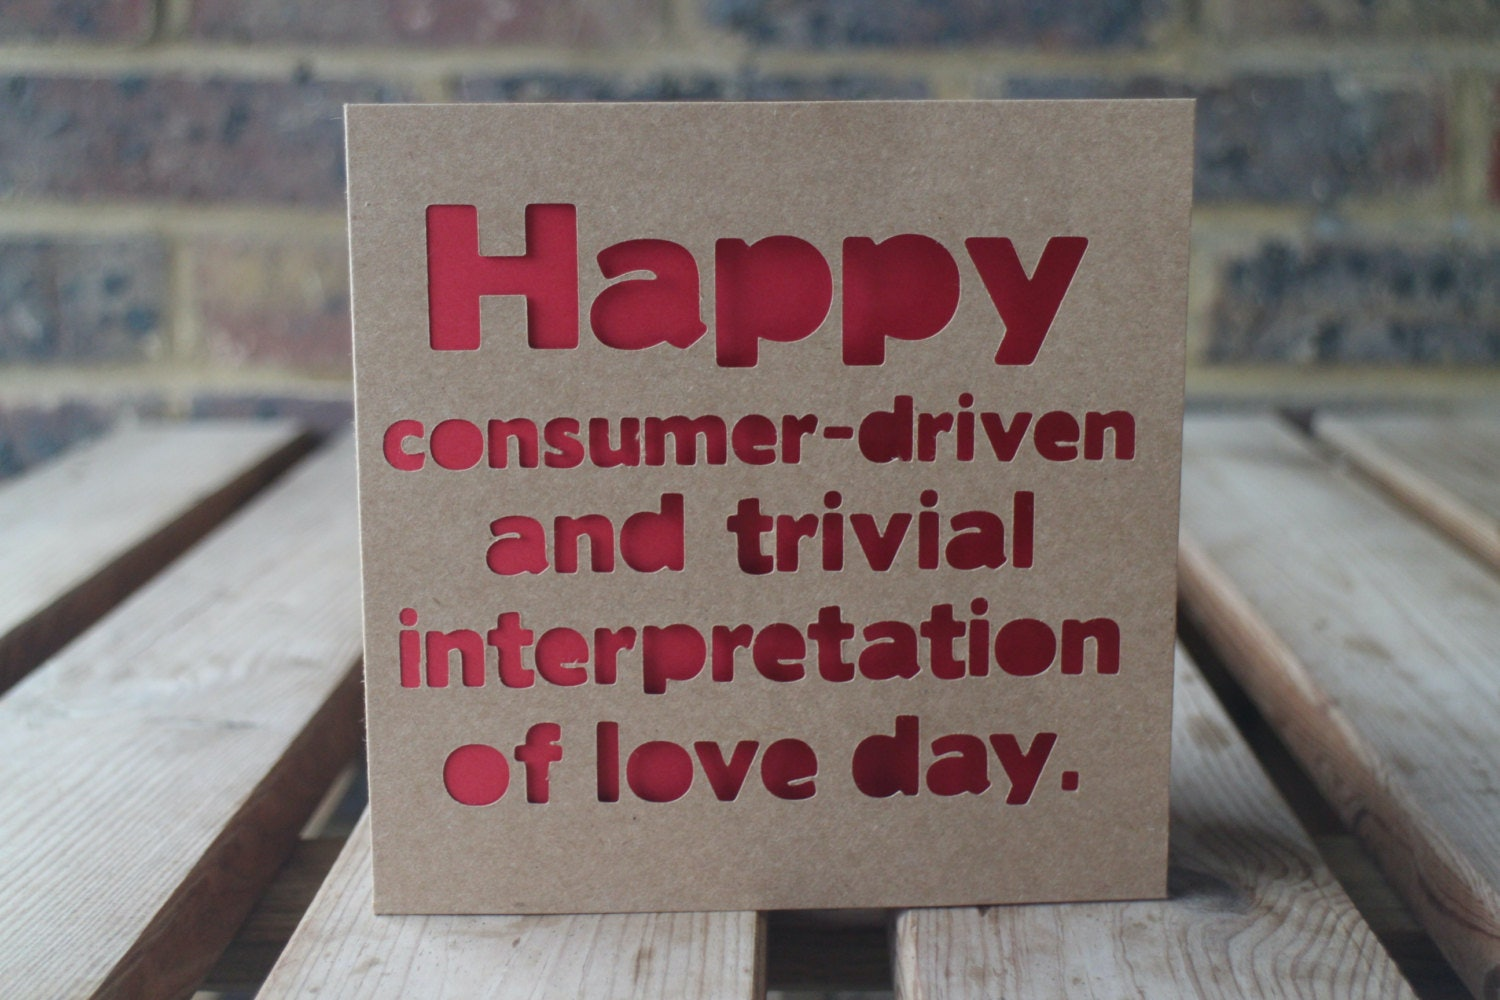 22 AntiValentines Day Cards Perfect For People Who Hate This Holiday – Mushy Valentine Cards